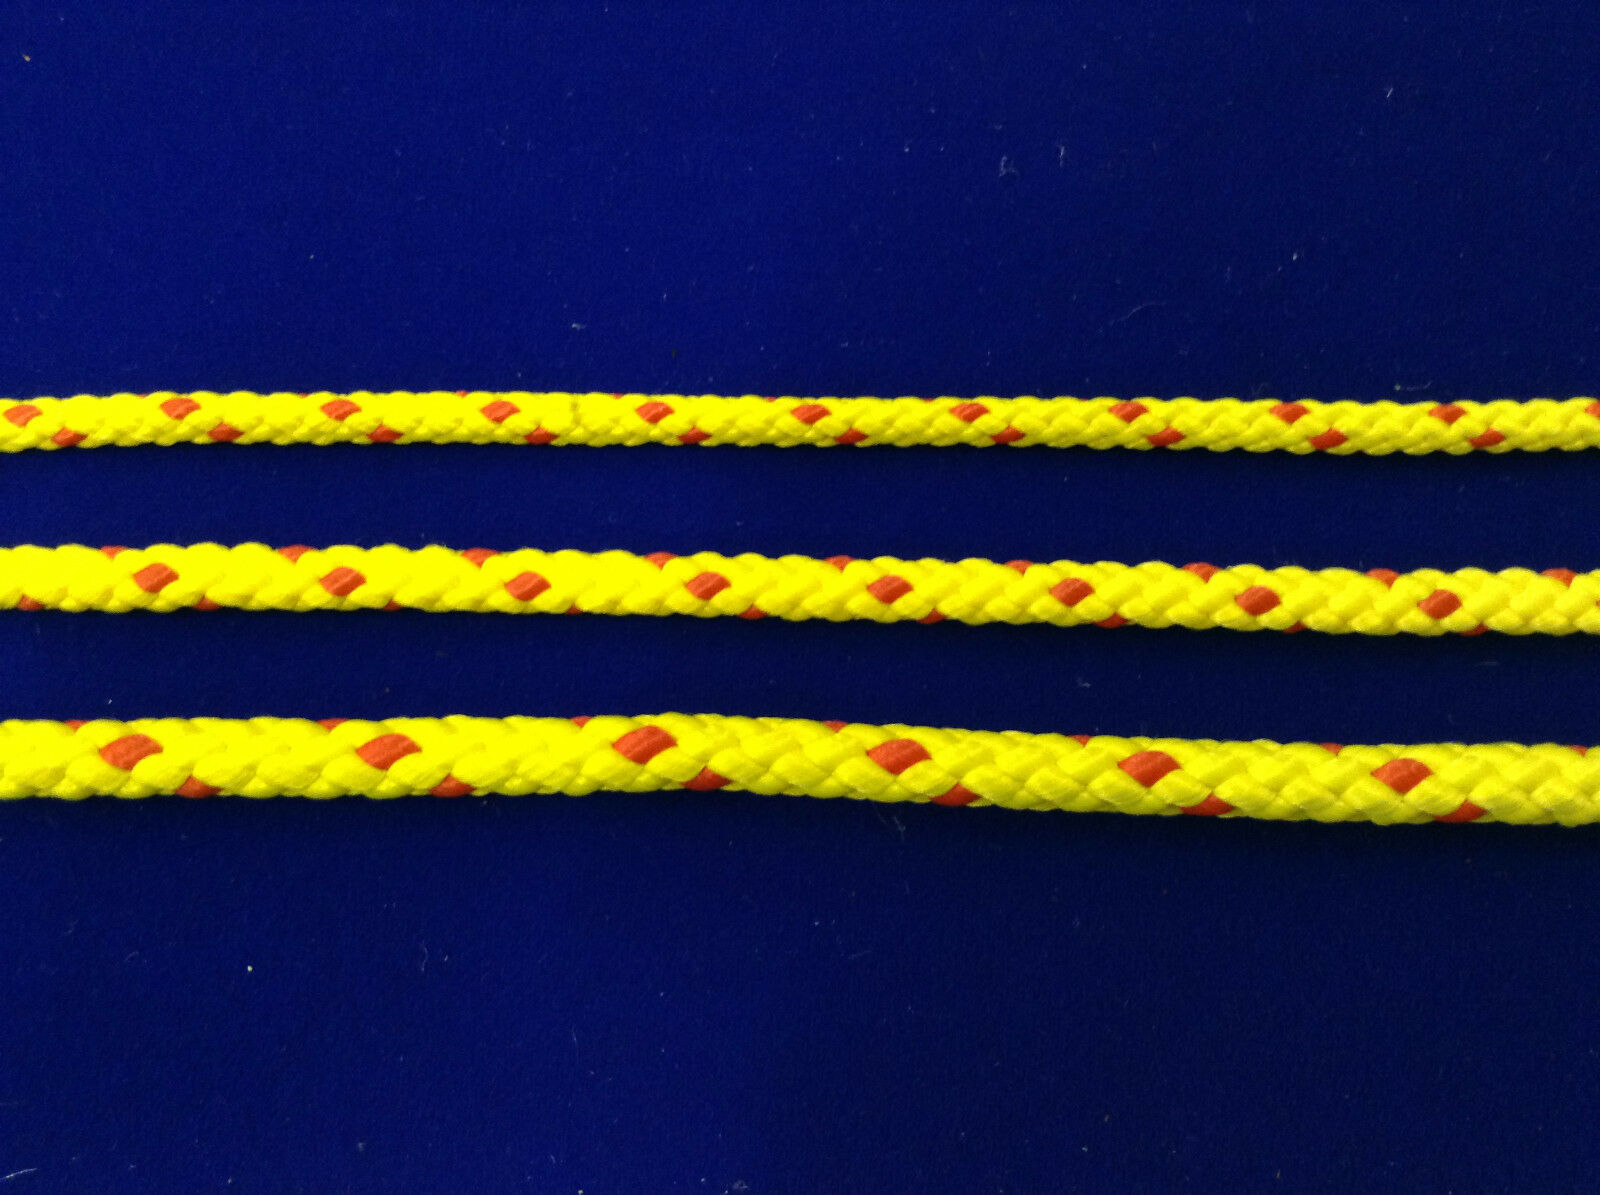 Yellow & Red floating safety life line buoy line rope 6mm 8mm 10mm diameter